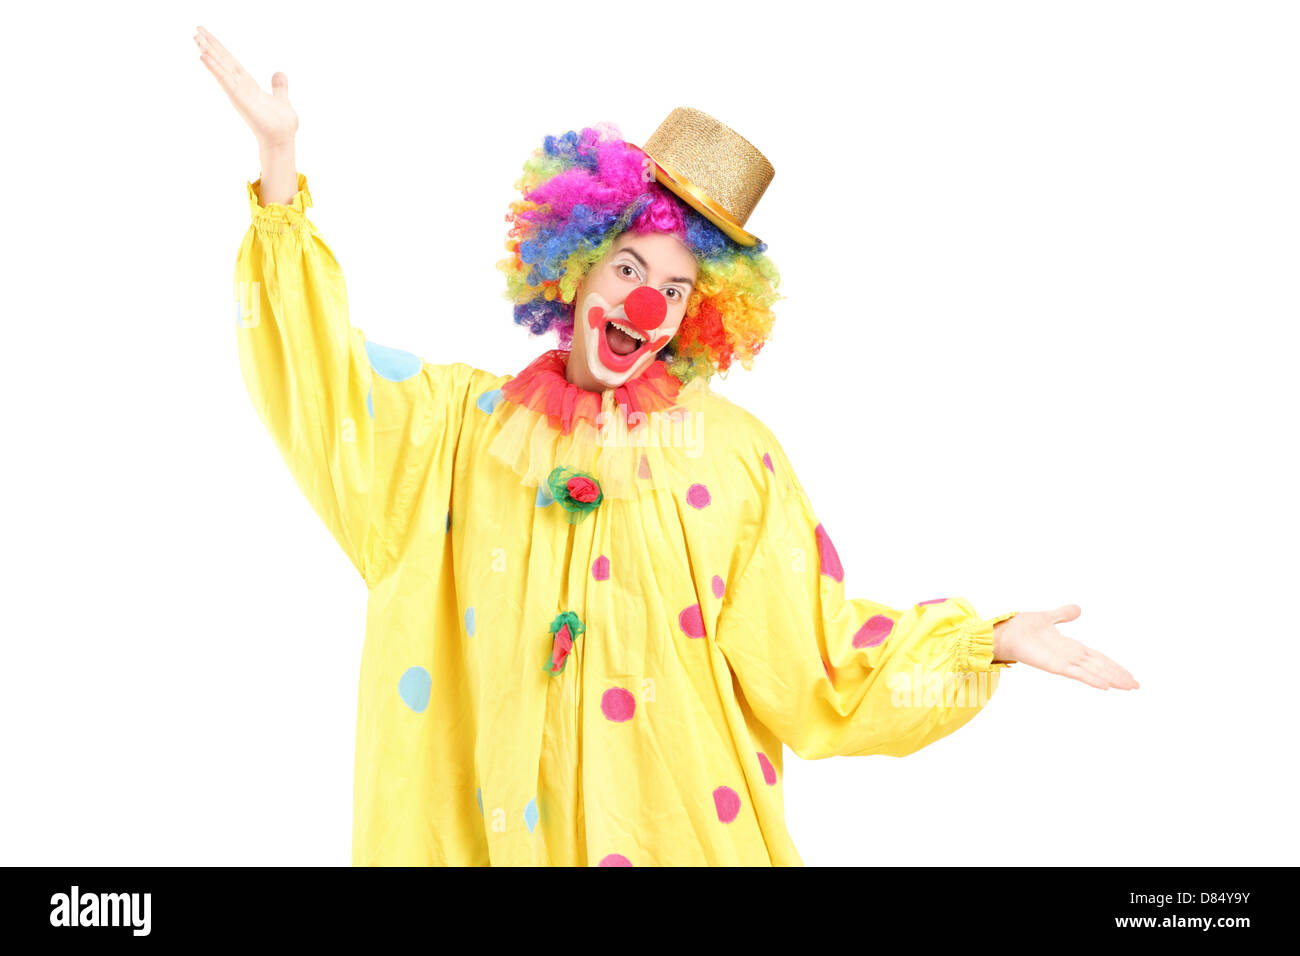 Funny circus clown gesturing with hands isolated on white background - Stock Image